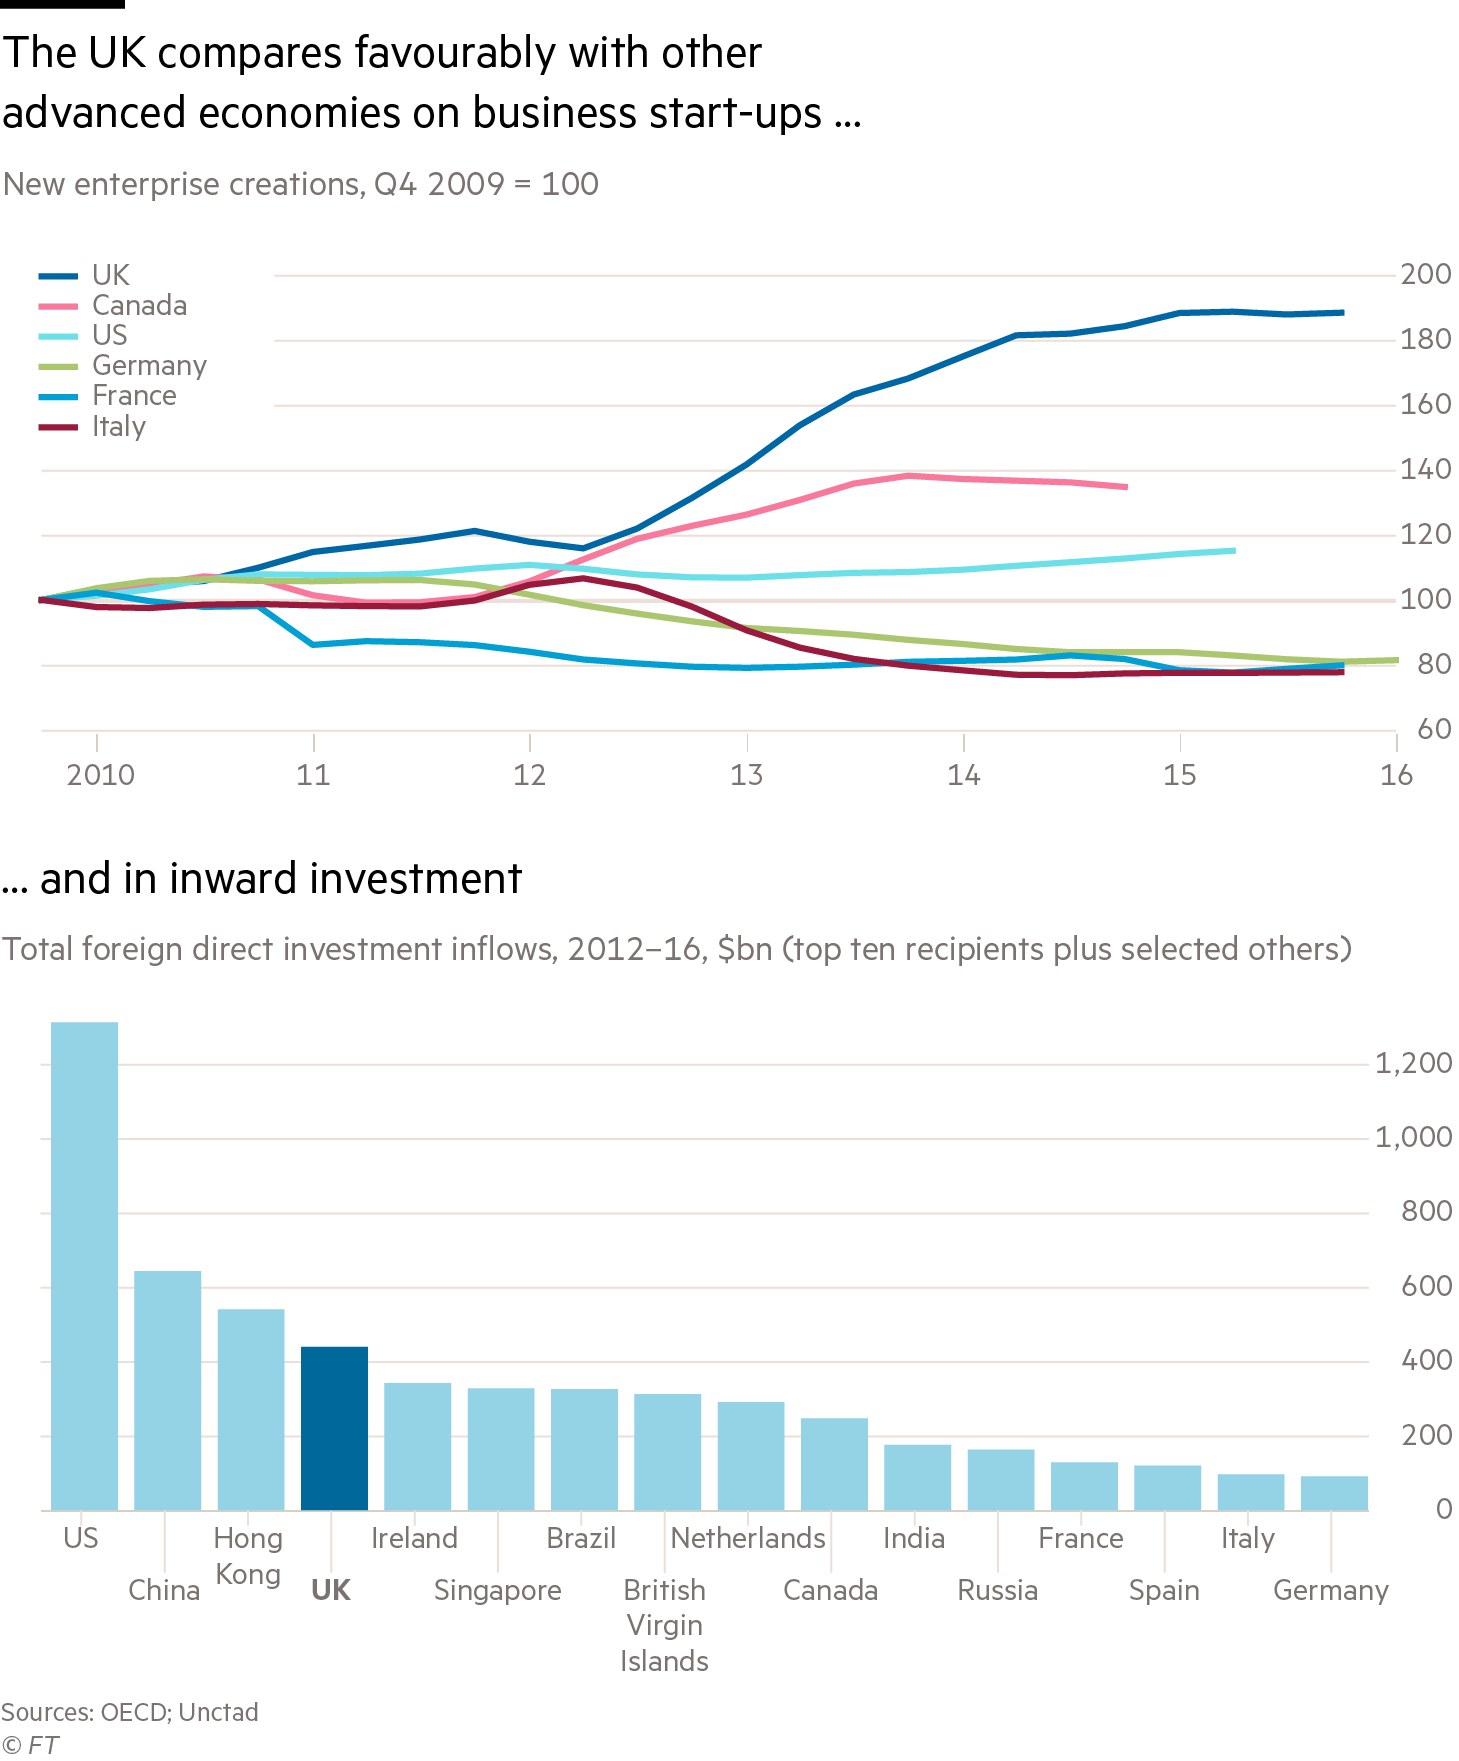 Chart on UK industrial stategy